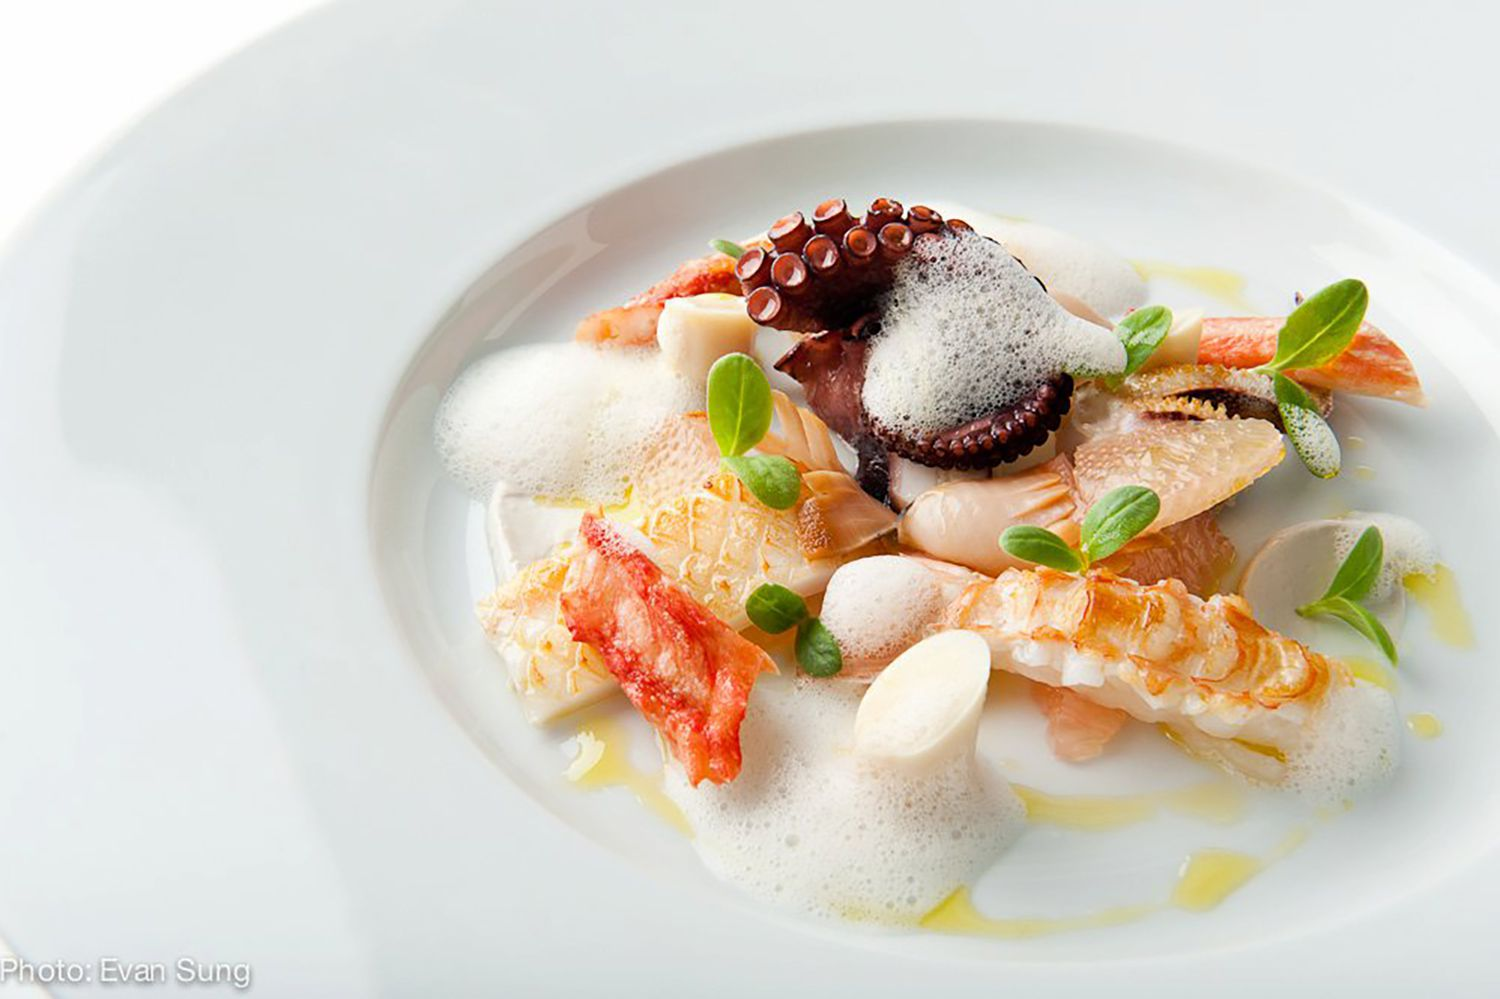 A seafood dish from The Chef's Table at Brooklyn Fare